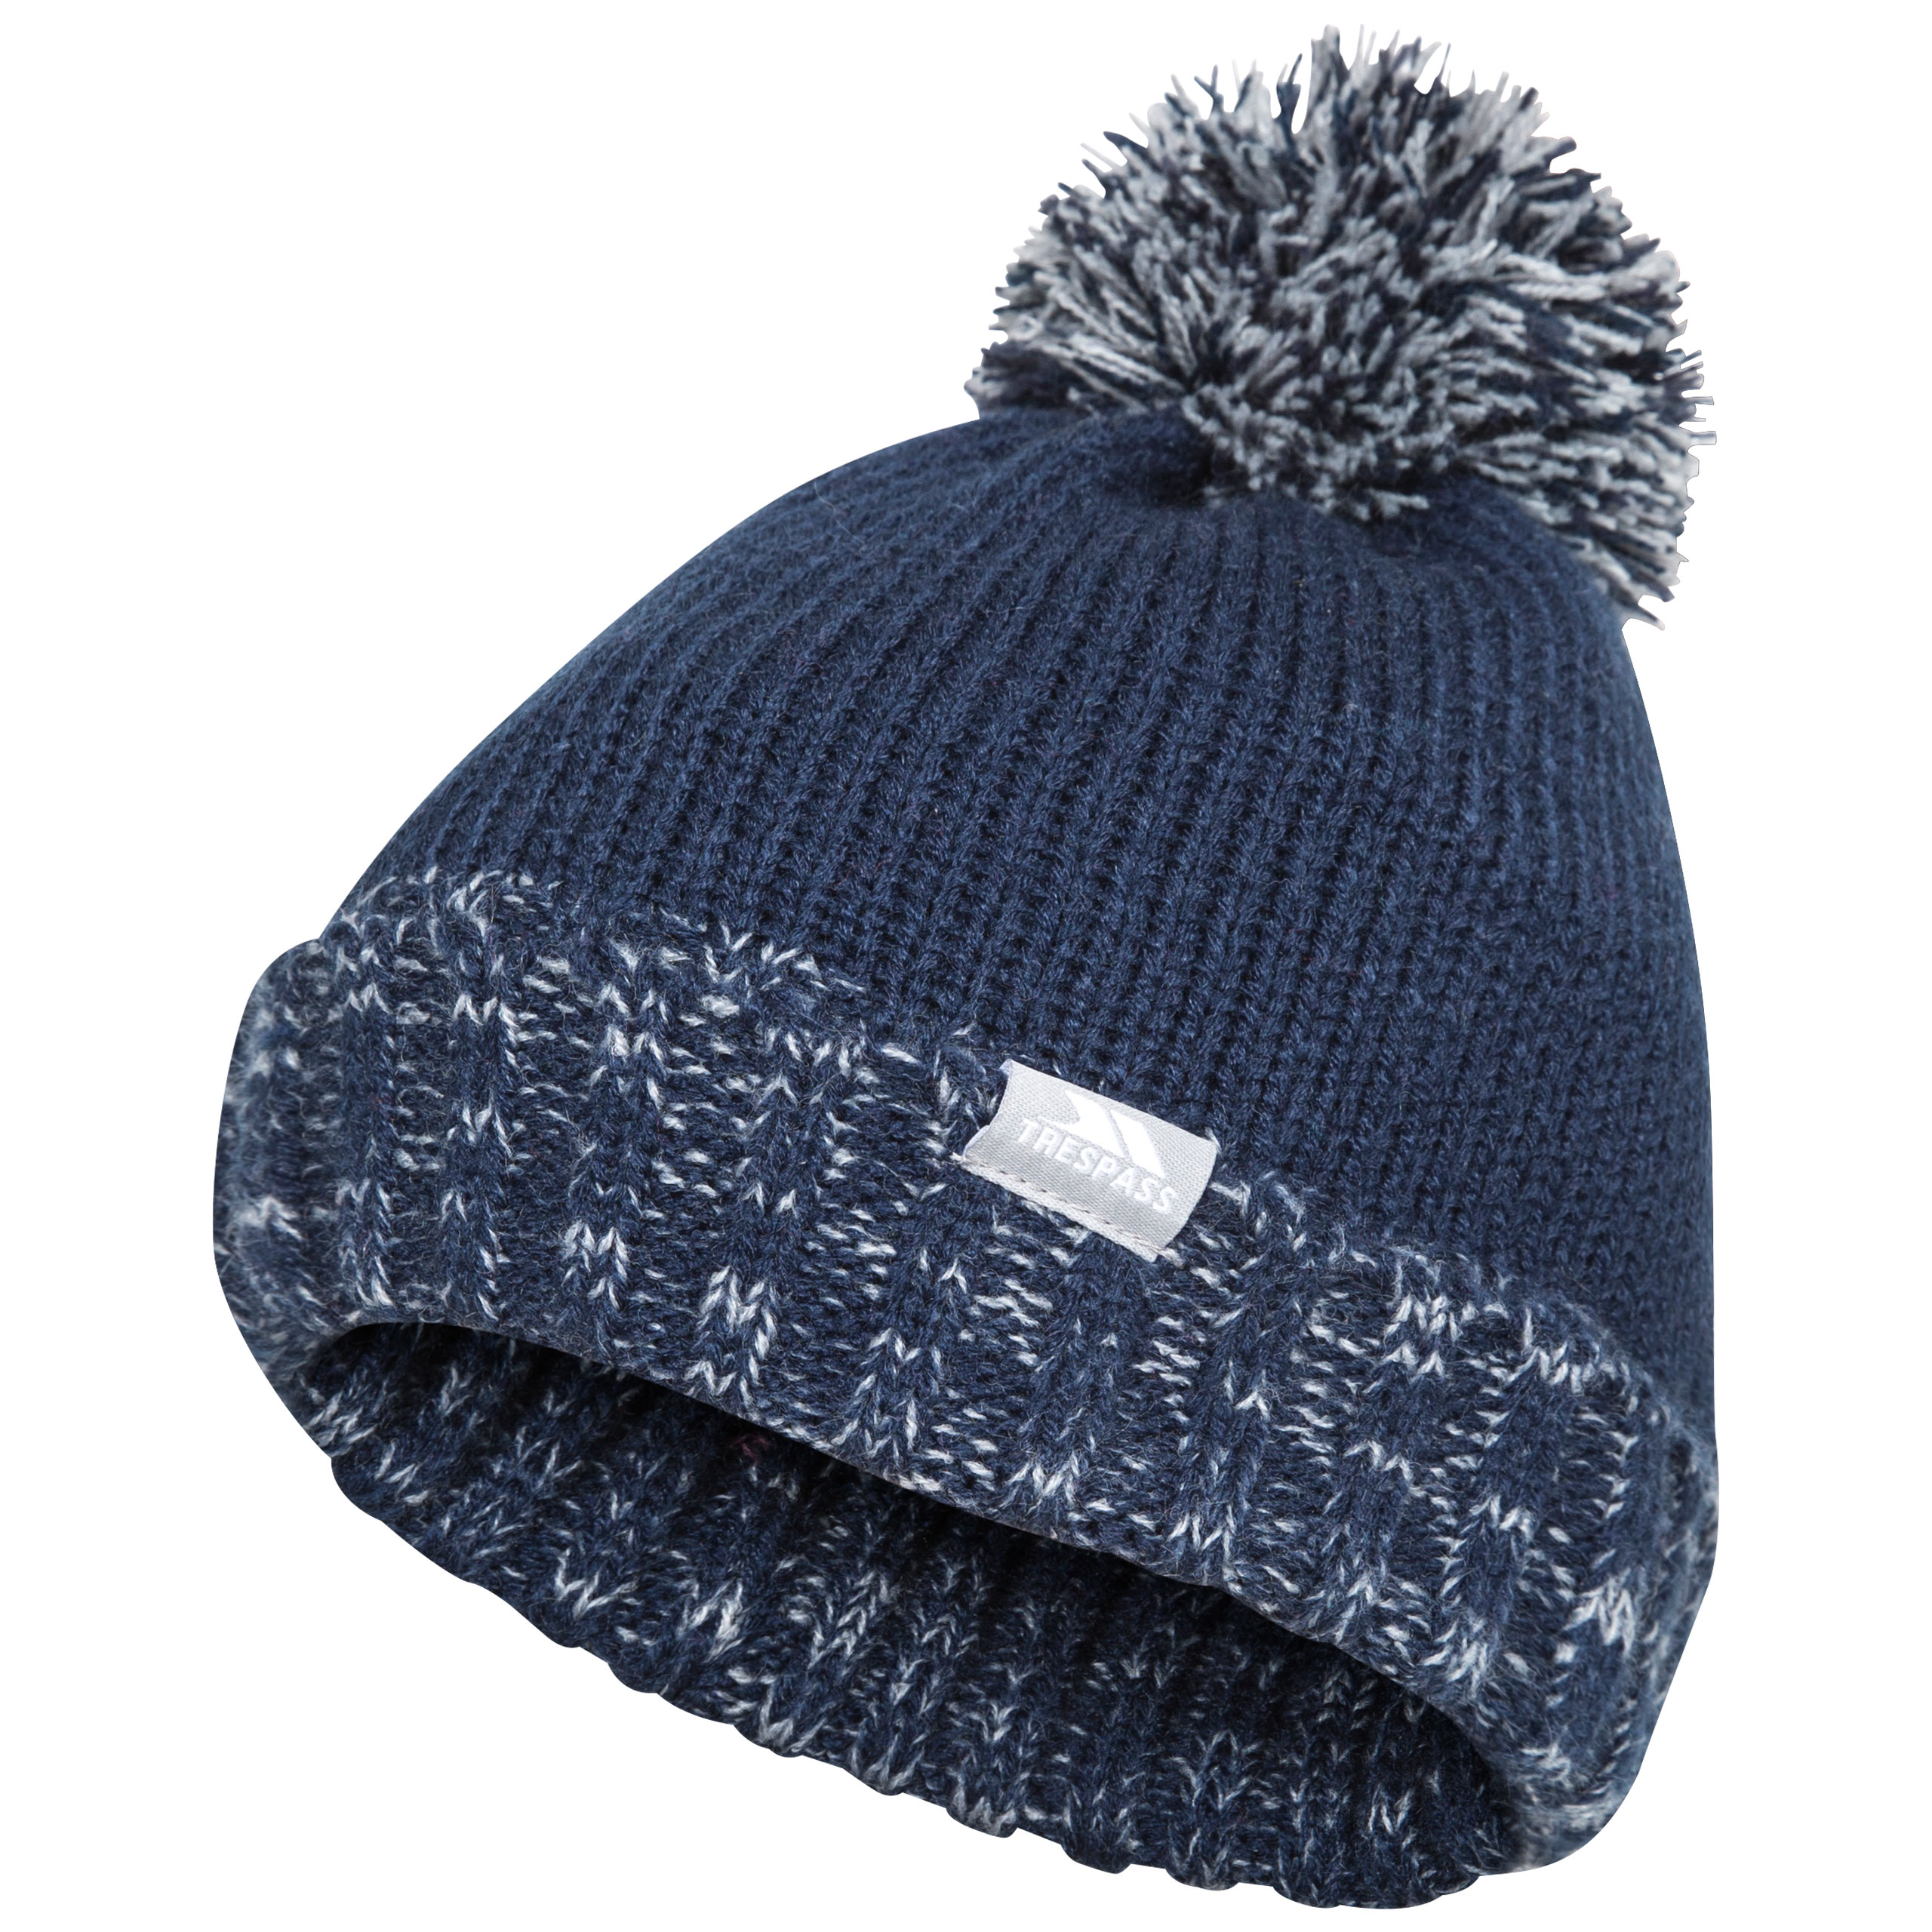 Trespass Nefti Kids Pom Pom Beanie Boys Girls Warm Winter Hat For ... 5070404fb61f